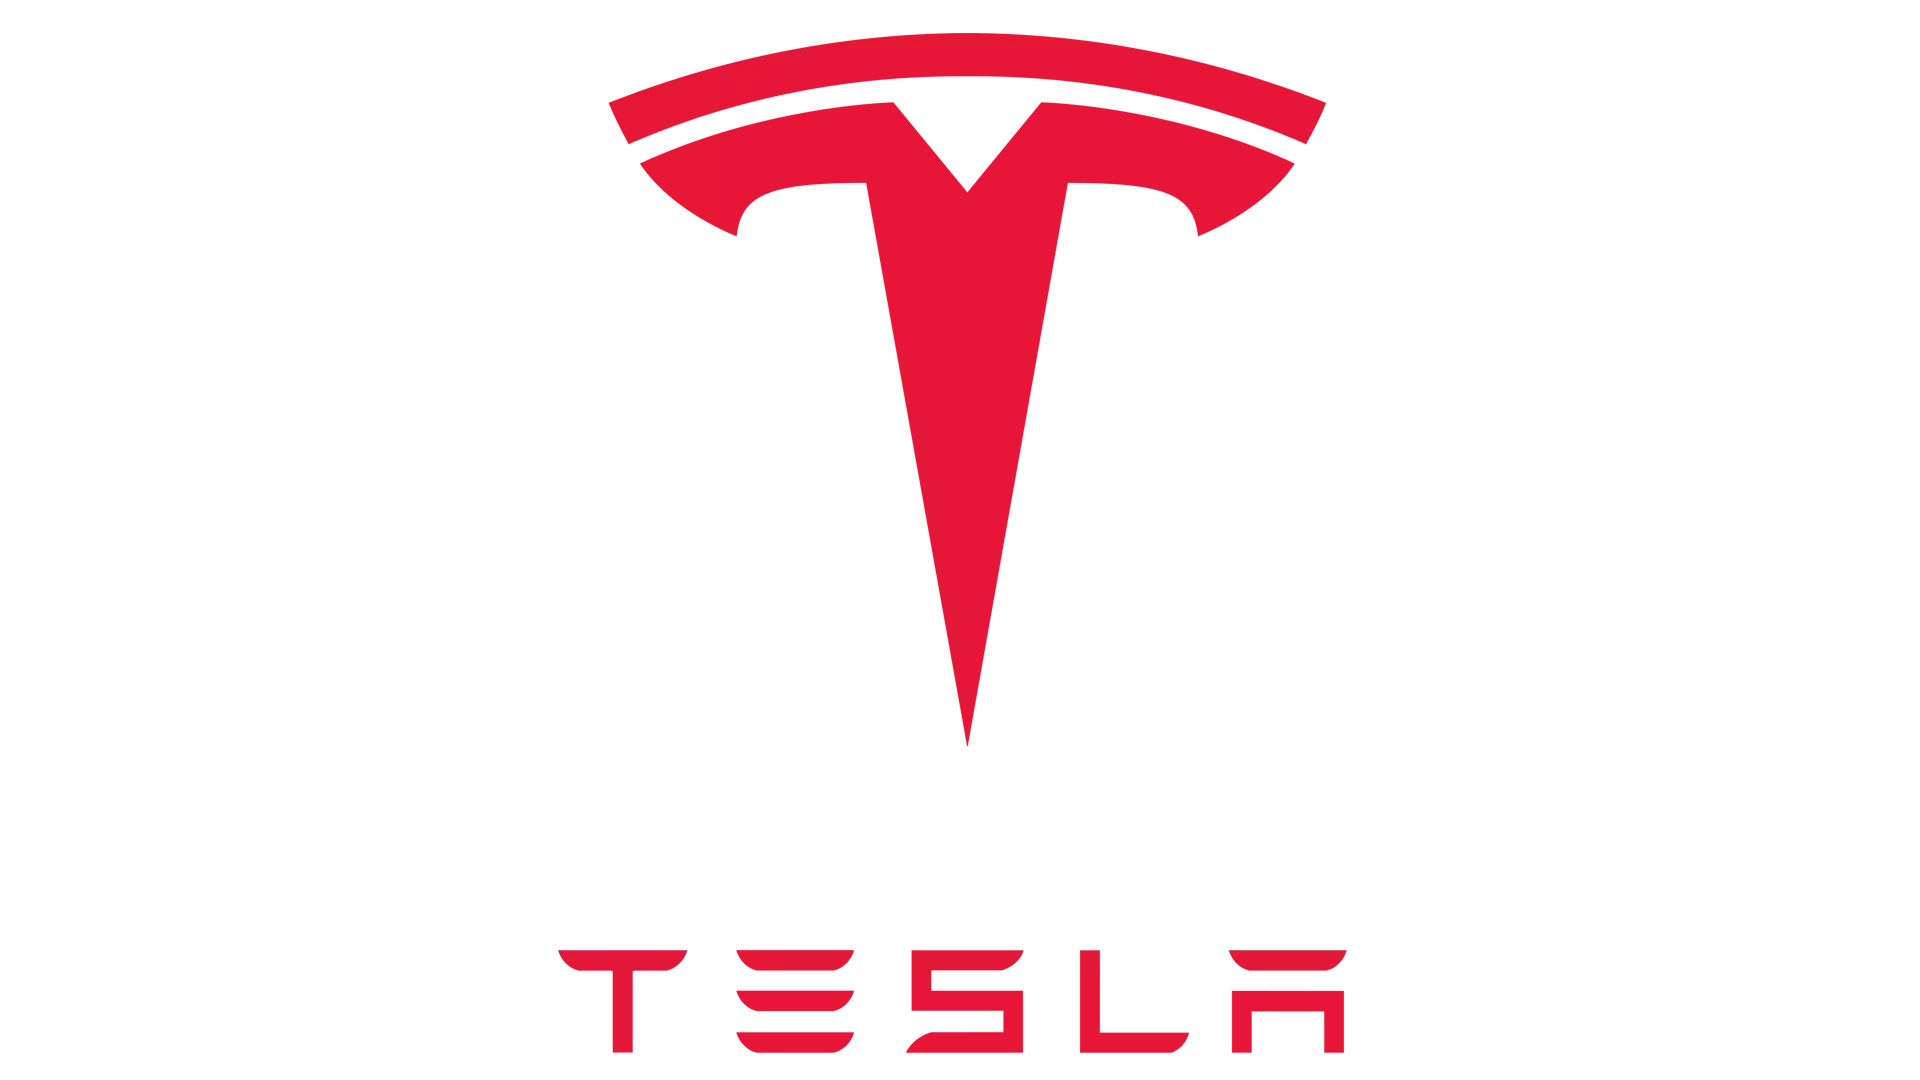 What is Tesla?